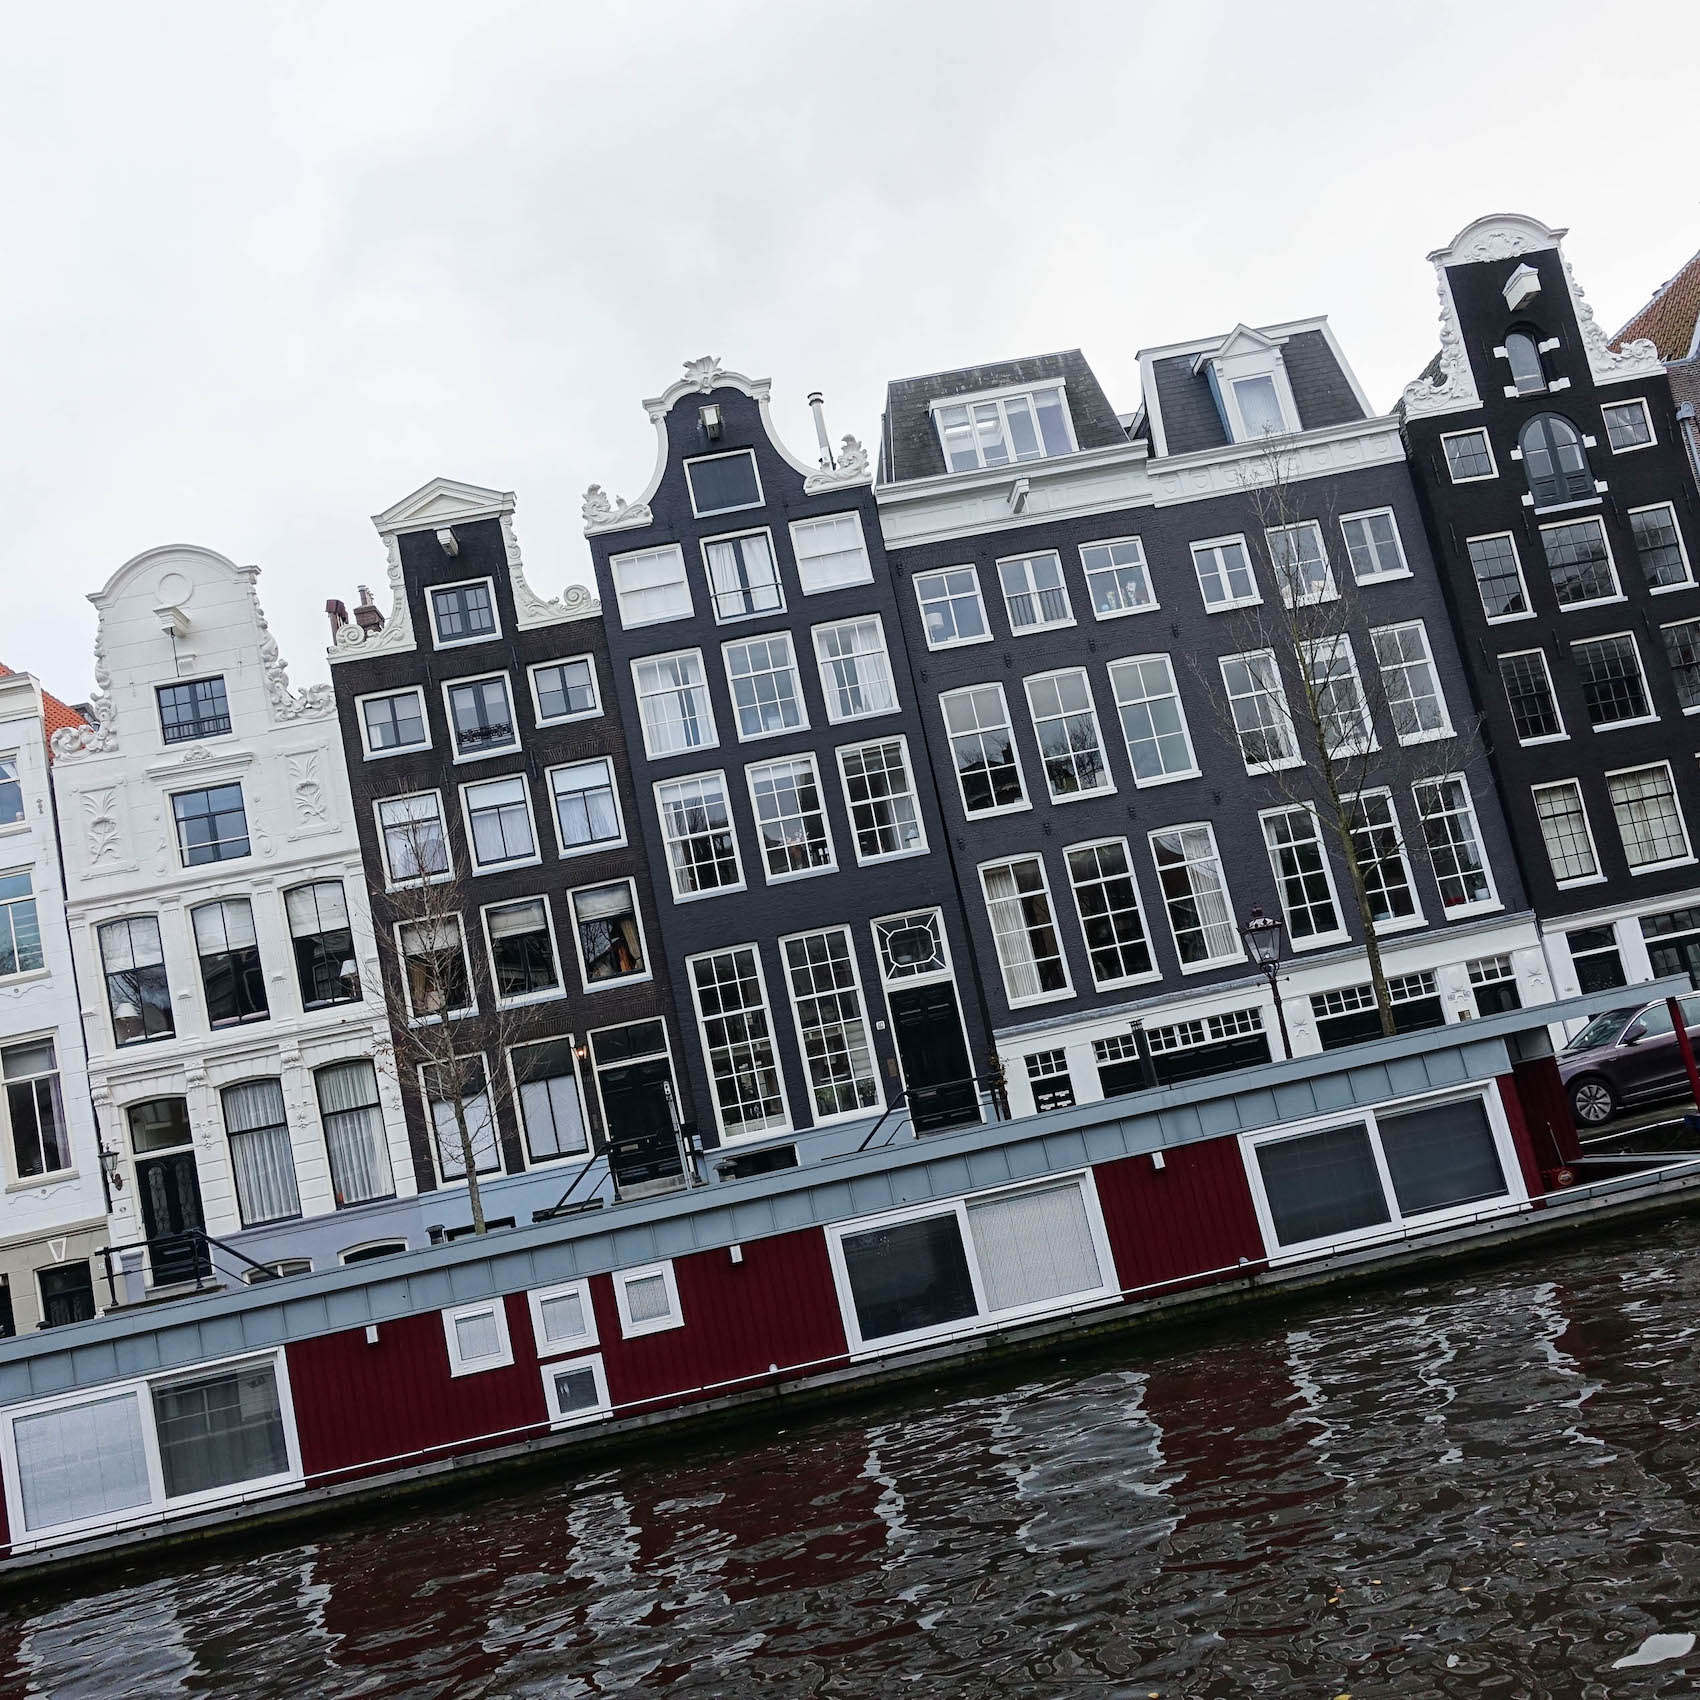 amsterdam-tipps suelovesnyc_sue_loves_nyc_susan_fengler_amsterdam_tipps_reise_blog_travel_blog_amsterdam_sightseeing